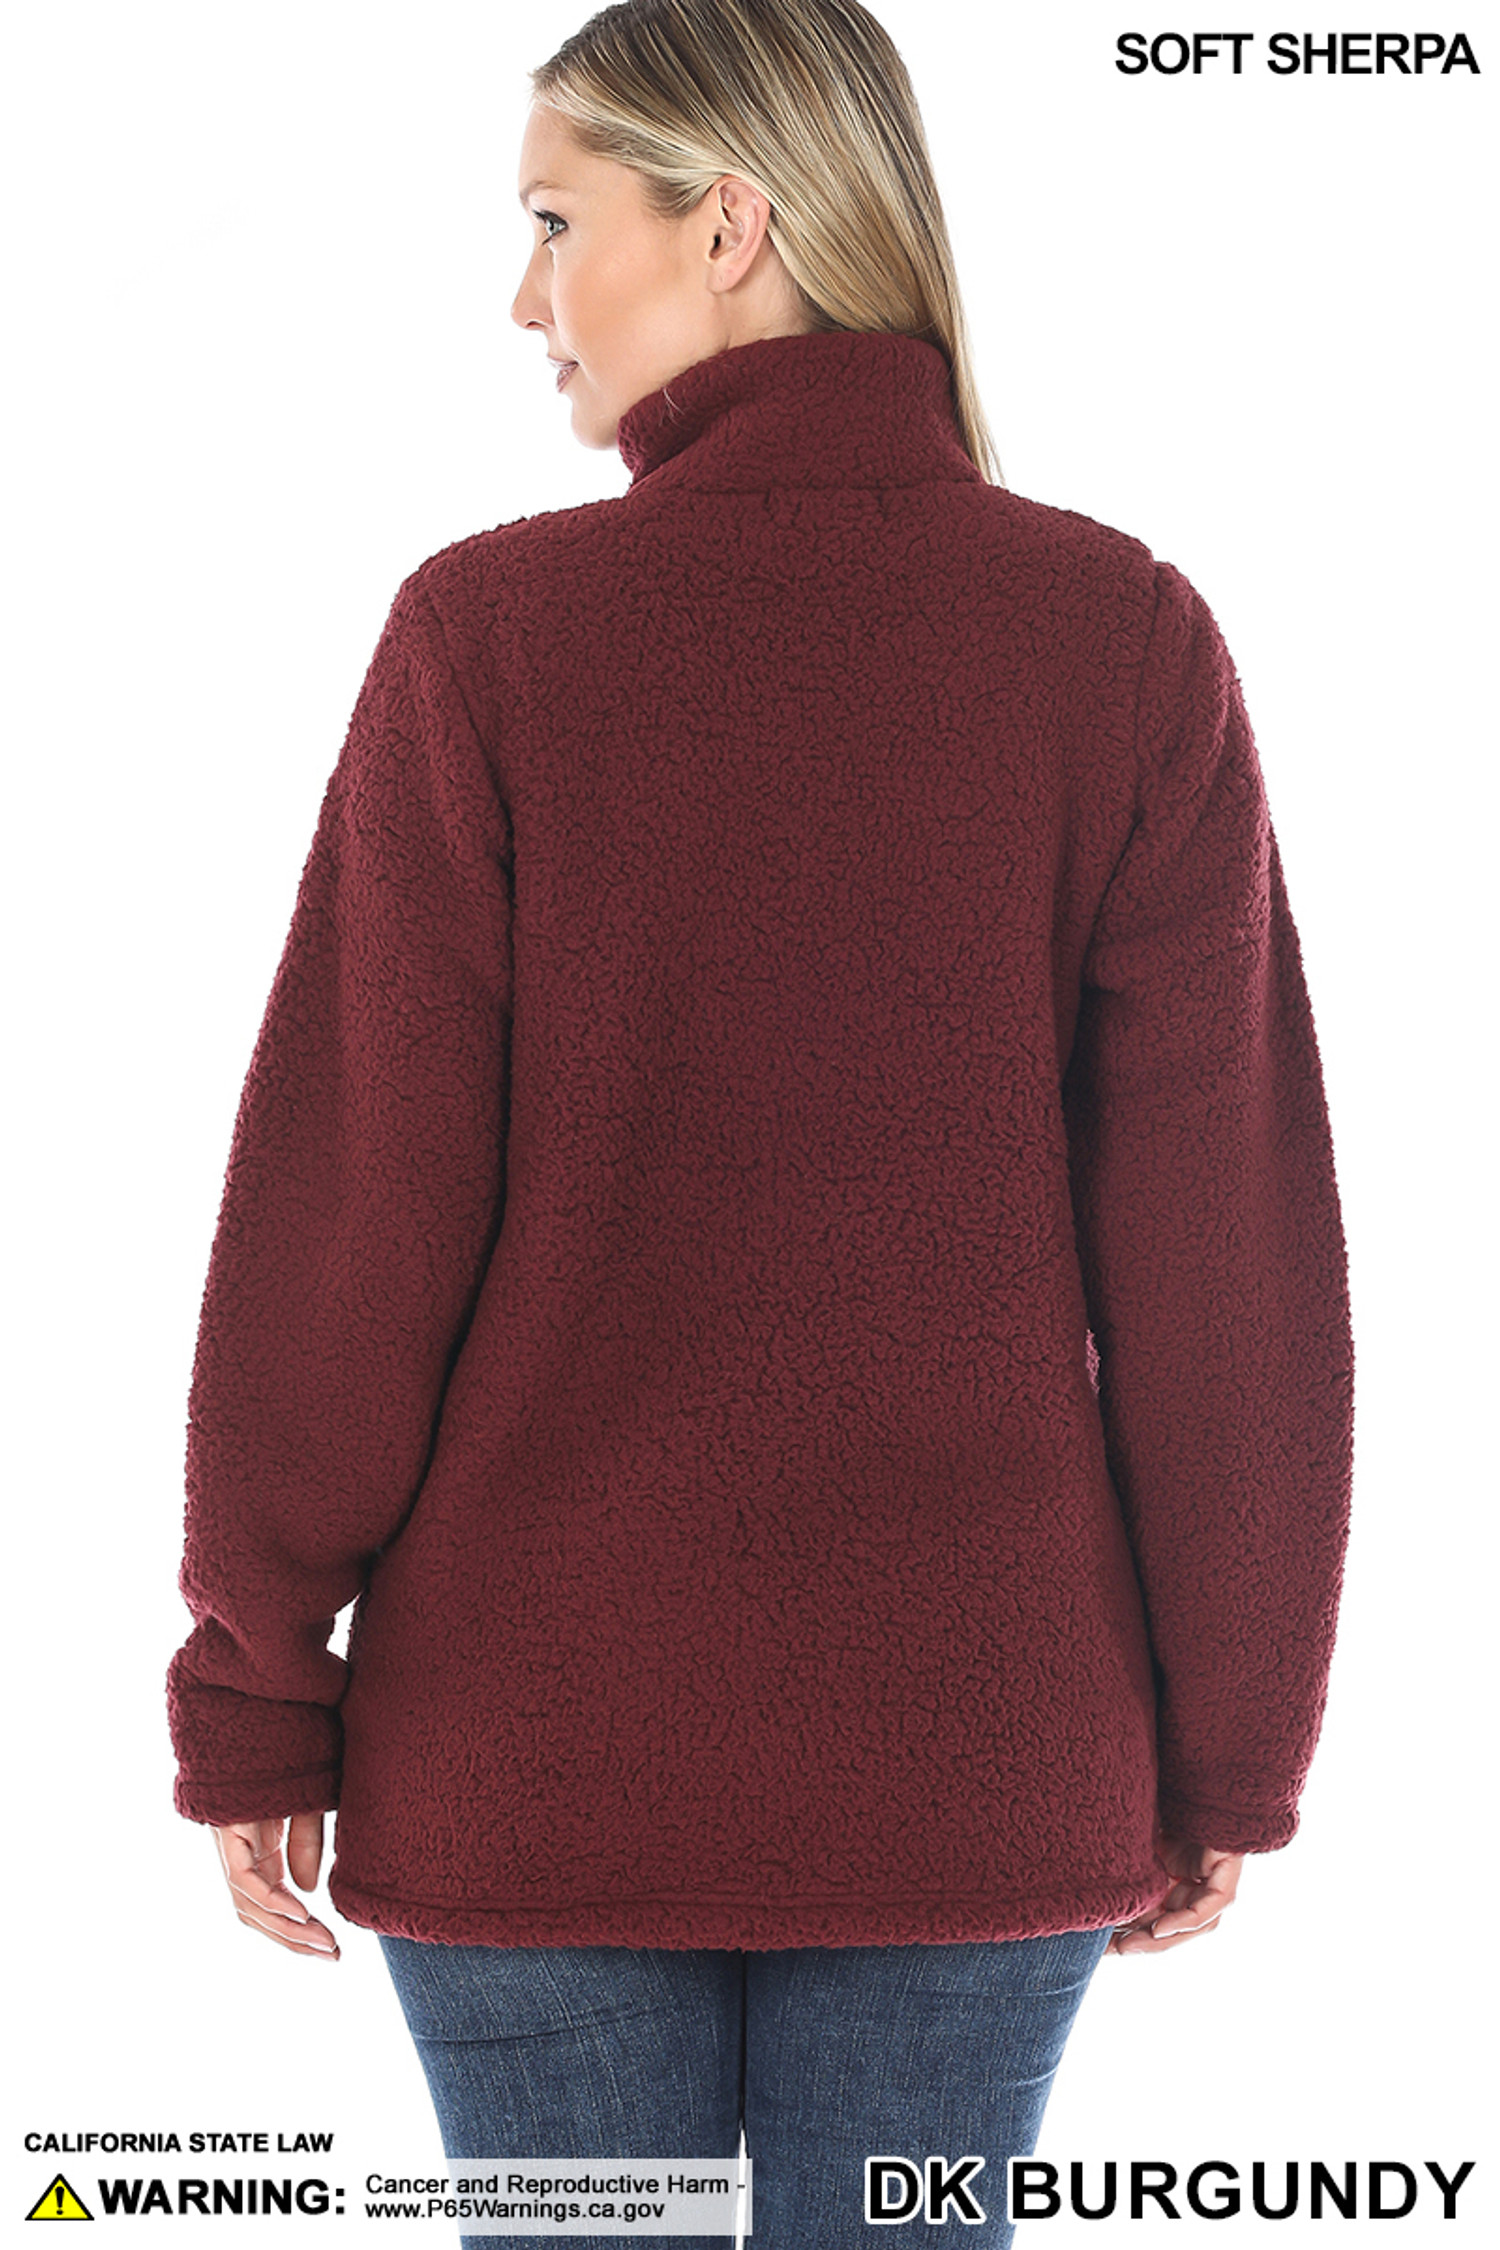 Back side image of of Dark Burgundy Sherpa Zip Up Jacket with Side Pockets